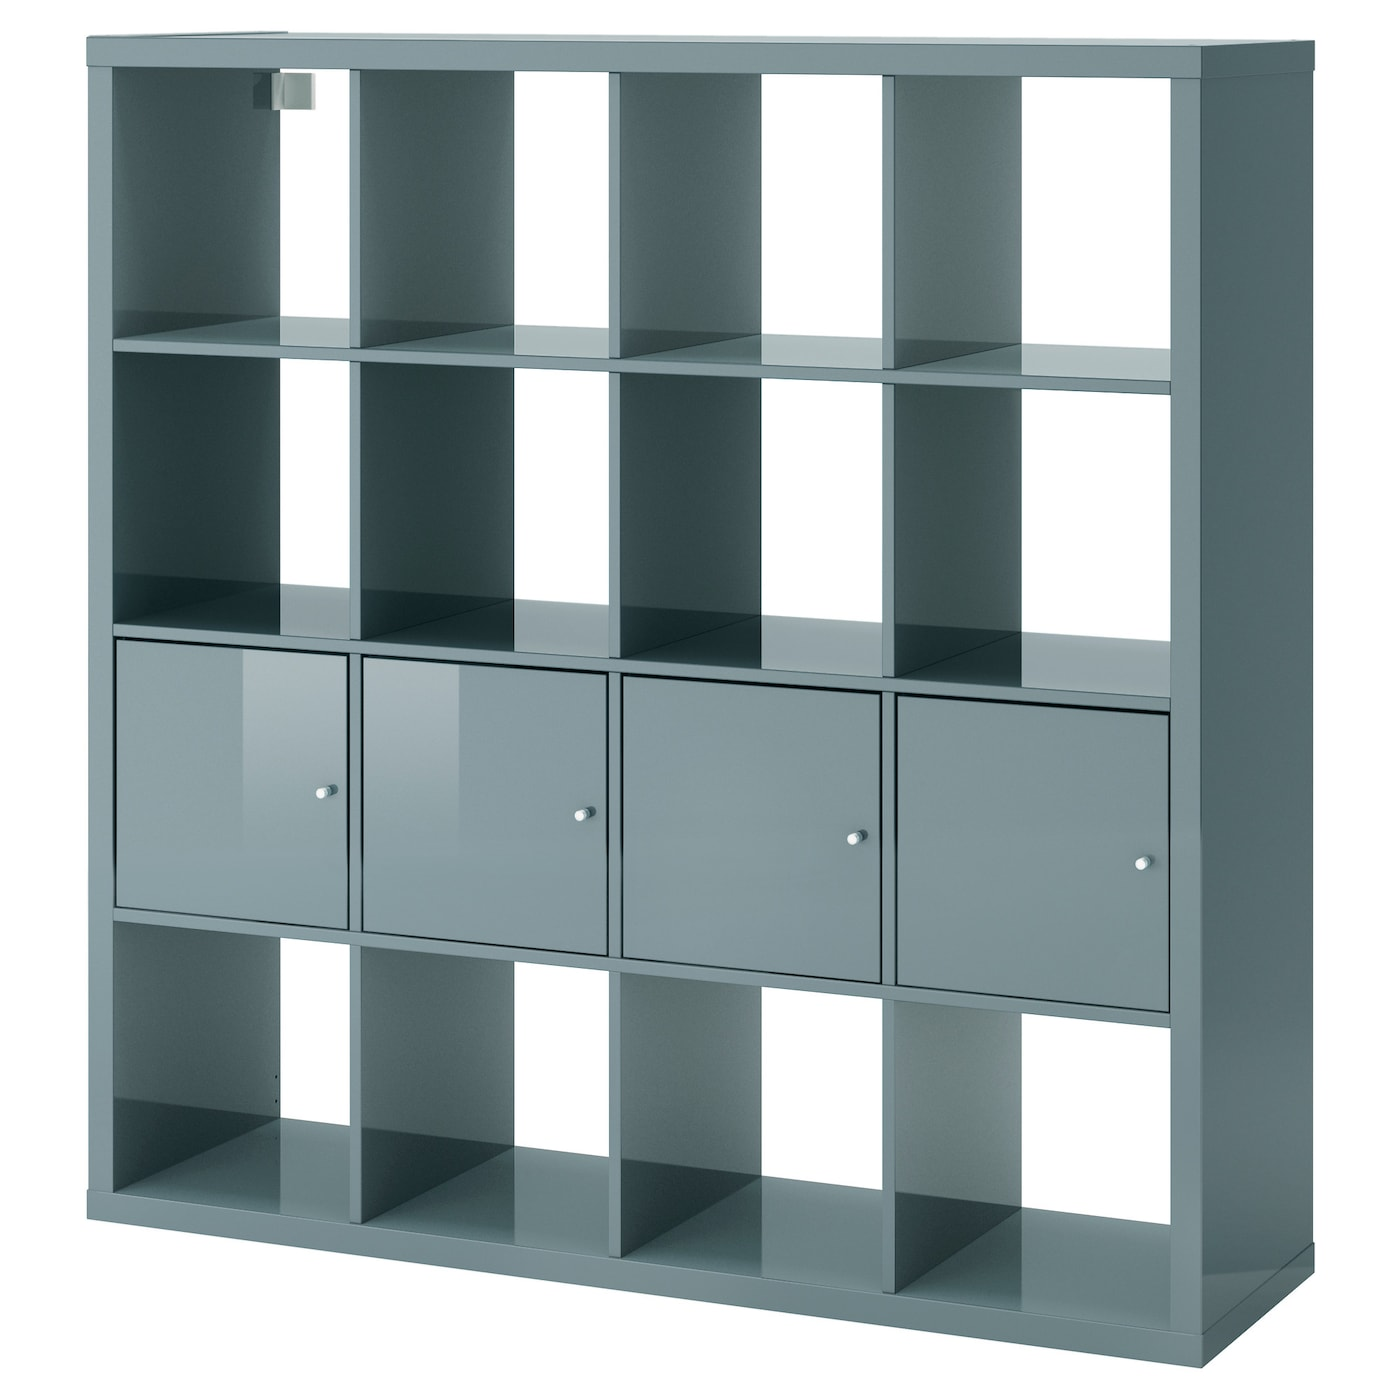 Kallax shelving unit with 4 inserts high gloss grey for Meuble bibliotheque profondeur 20 cm